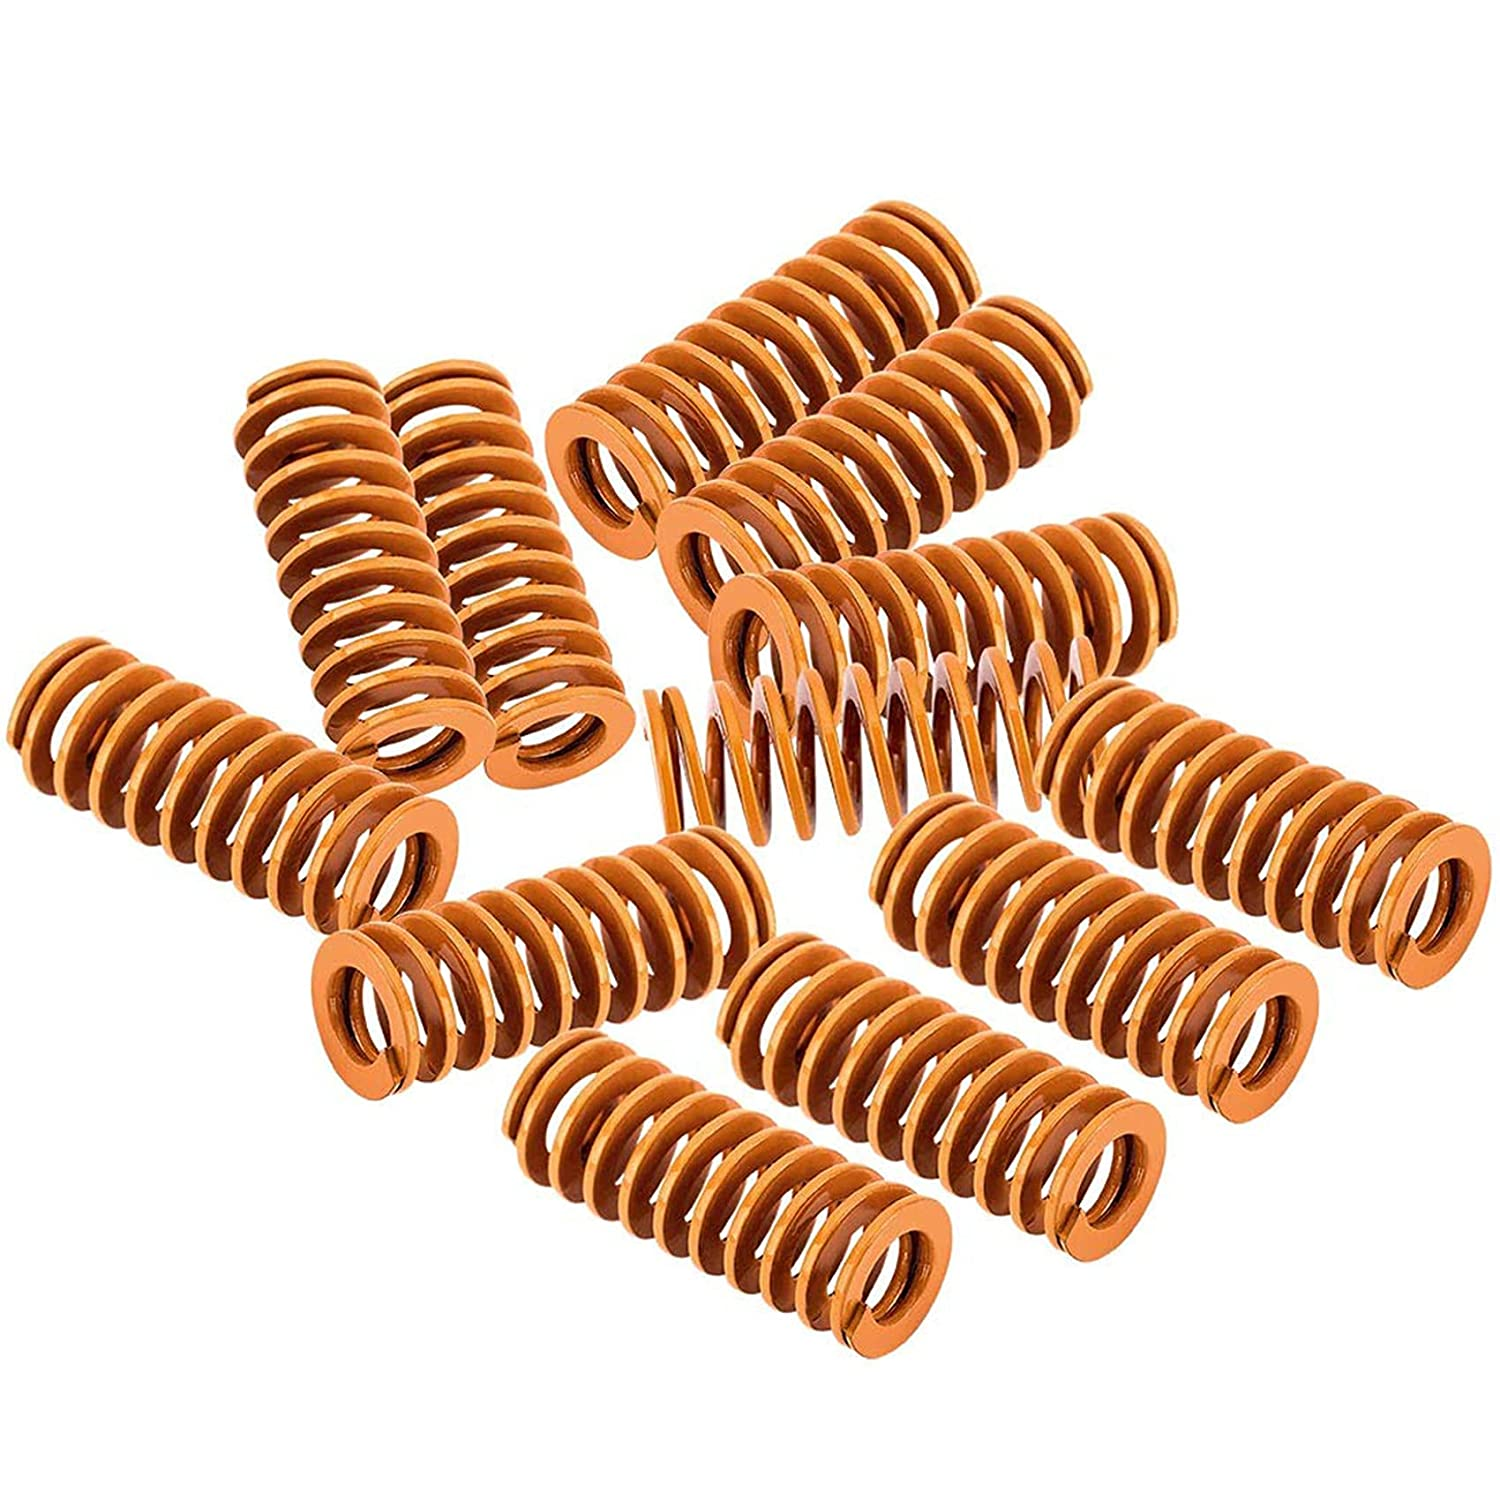 12 Pack Mould Die Spring Compression Ranking TOP4 Ranking TOP12 3s Be Ender The for